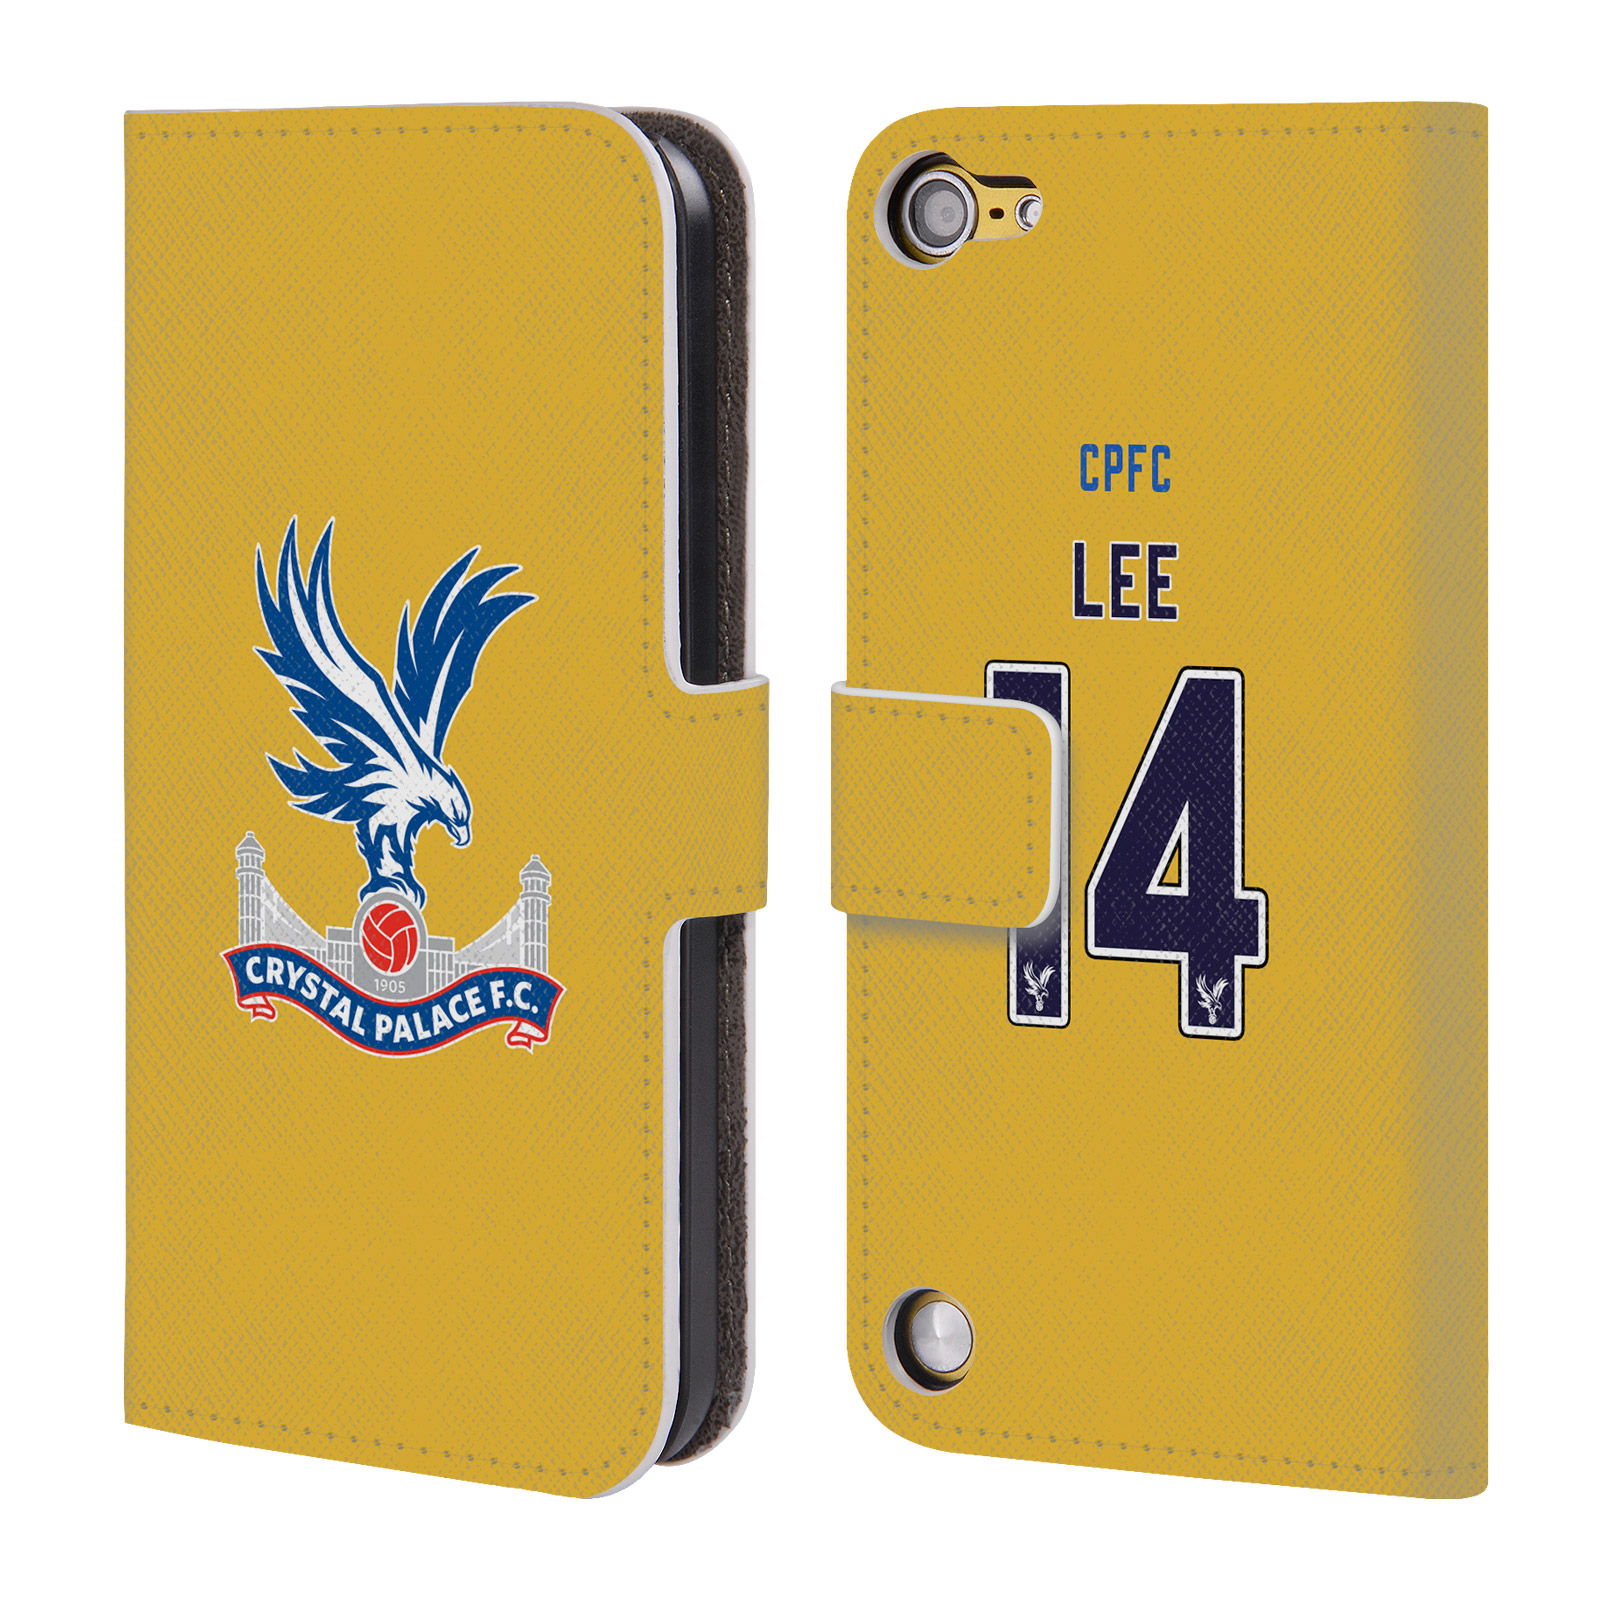 OFFICIAL CRYSTAL PALACE FC 2016/17 PLAYERS AWAY KIT LEATHER BOOK WALLET CASE COVER FOR APPLE IPOD TOUCH MP3